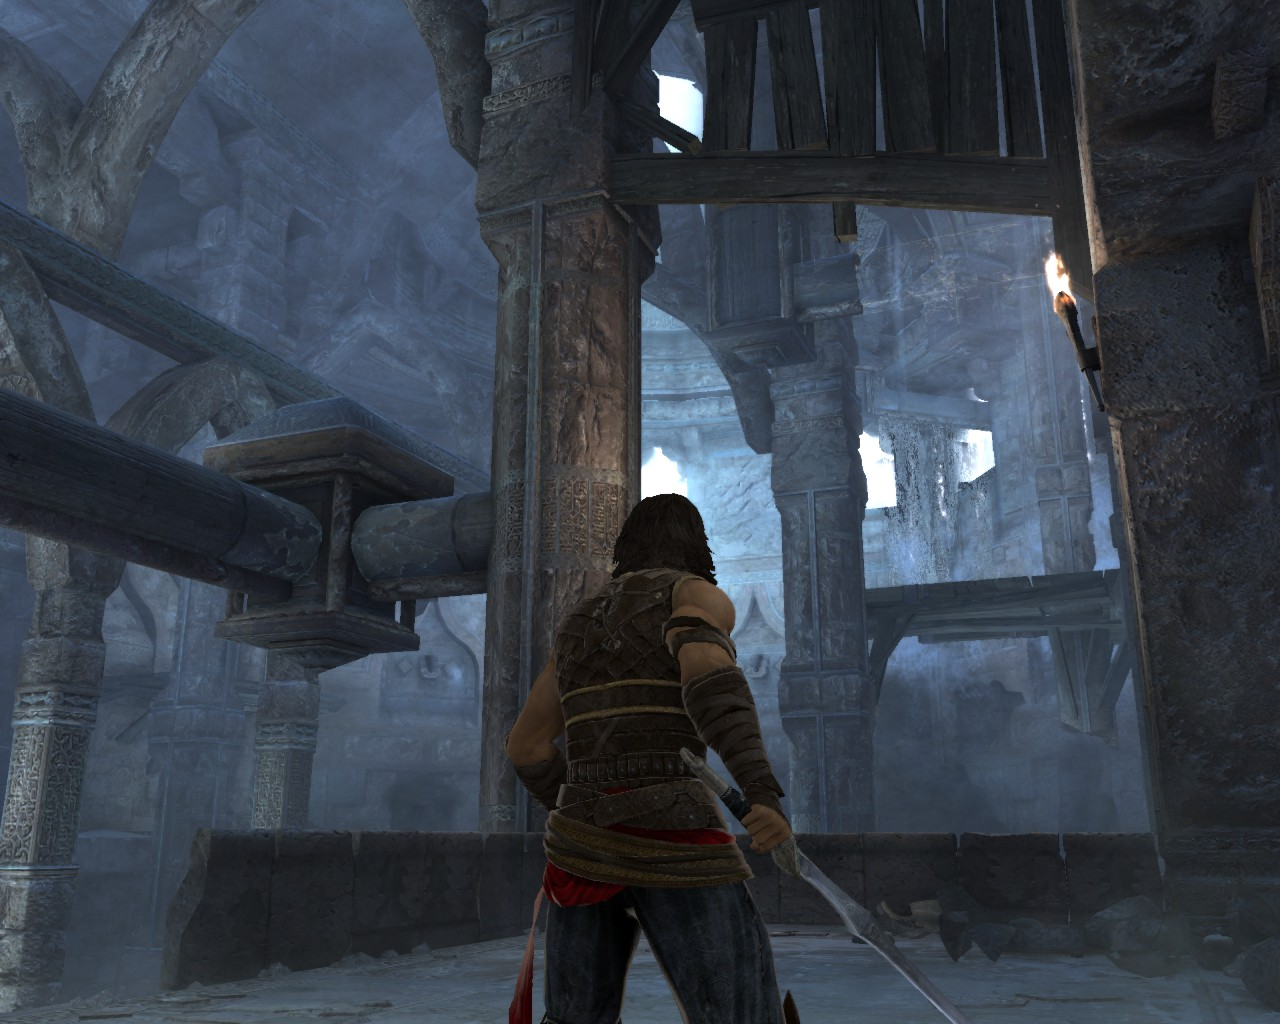 Prince of Persia 2014-06-04 19-22-23-66.jpg - Prince of Persia: The Forgotten Sands